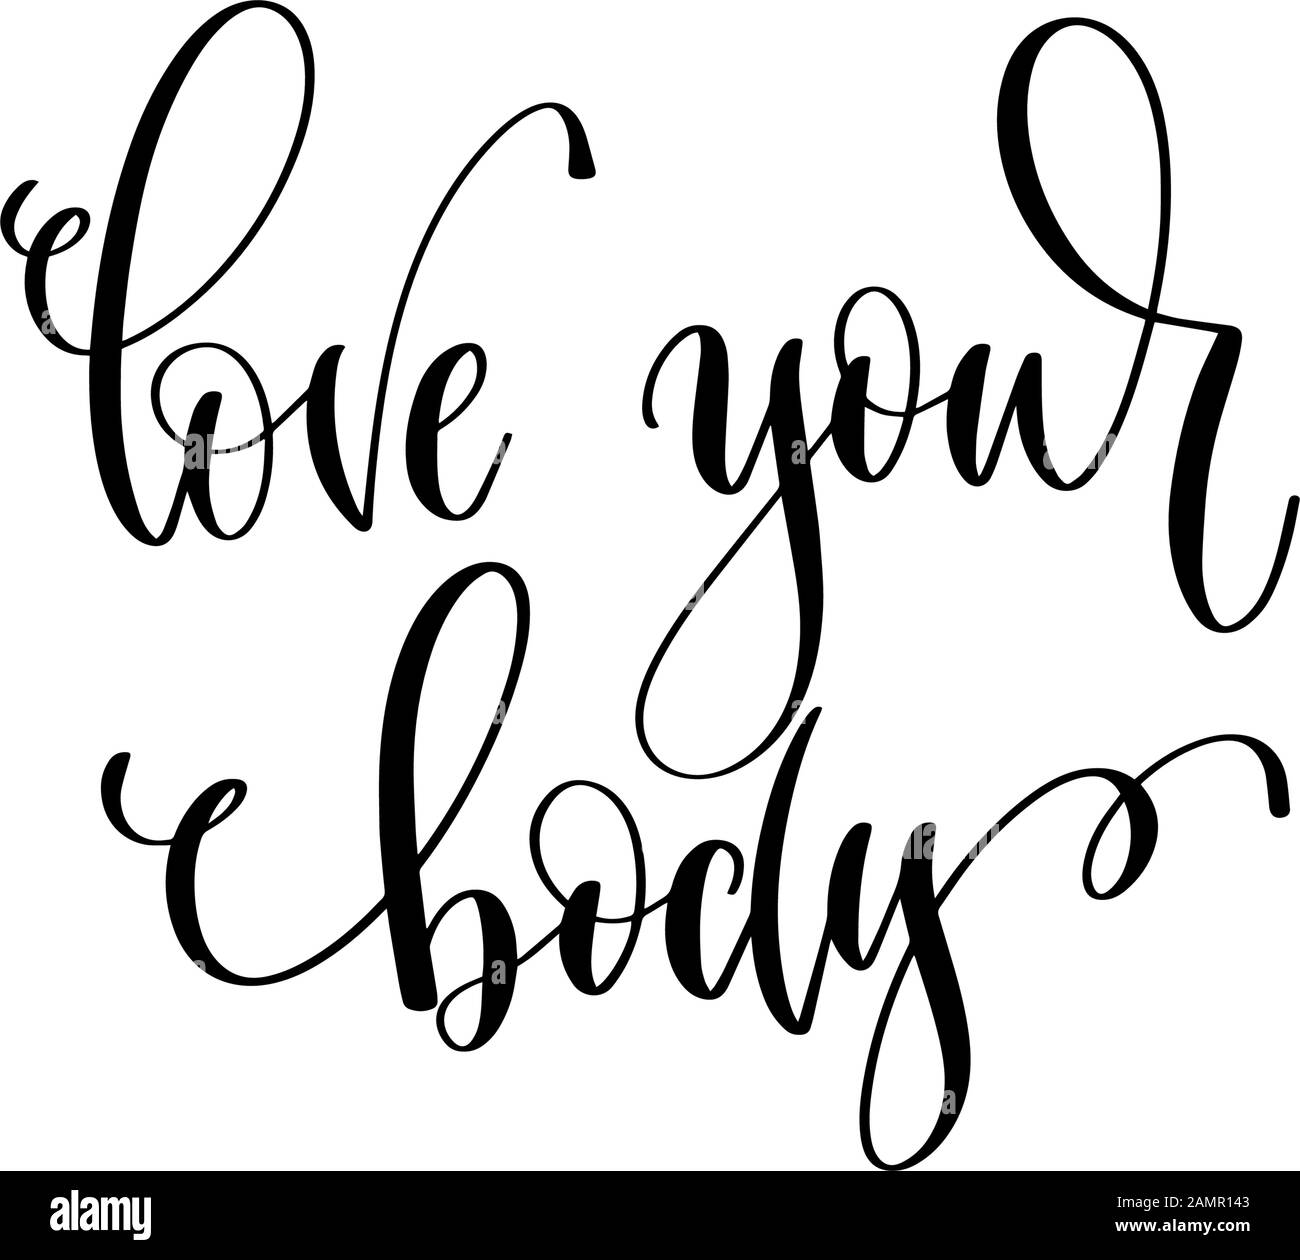 Love Your Body Hand Lettering Inscription Text Motivation And Inspiration Positive Quote Design Calligraphy Vector Illustration Stock Vector Image Art Alamy